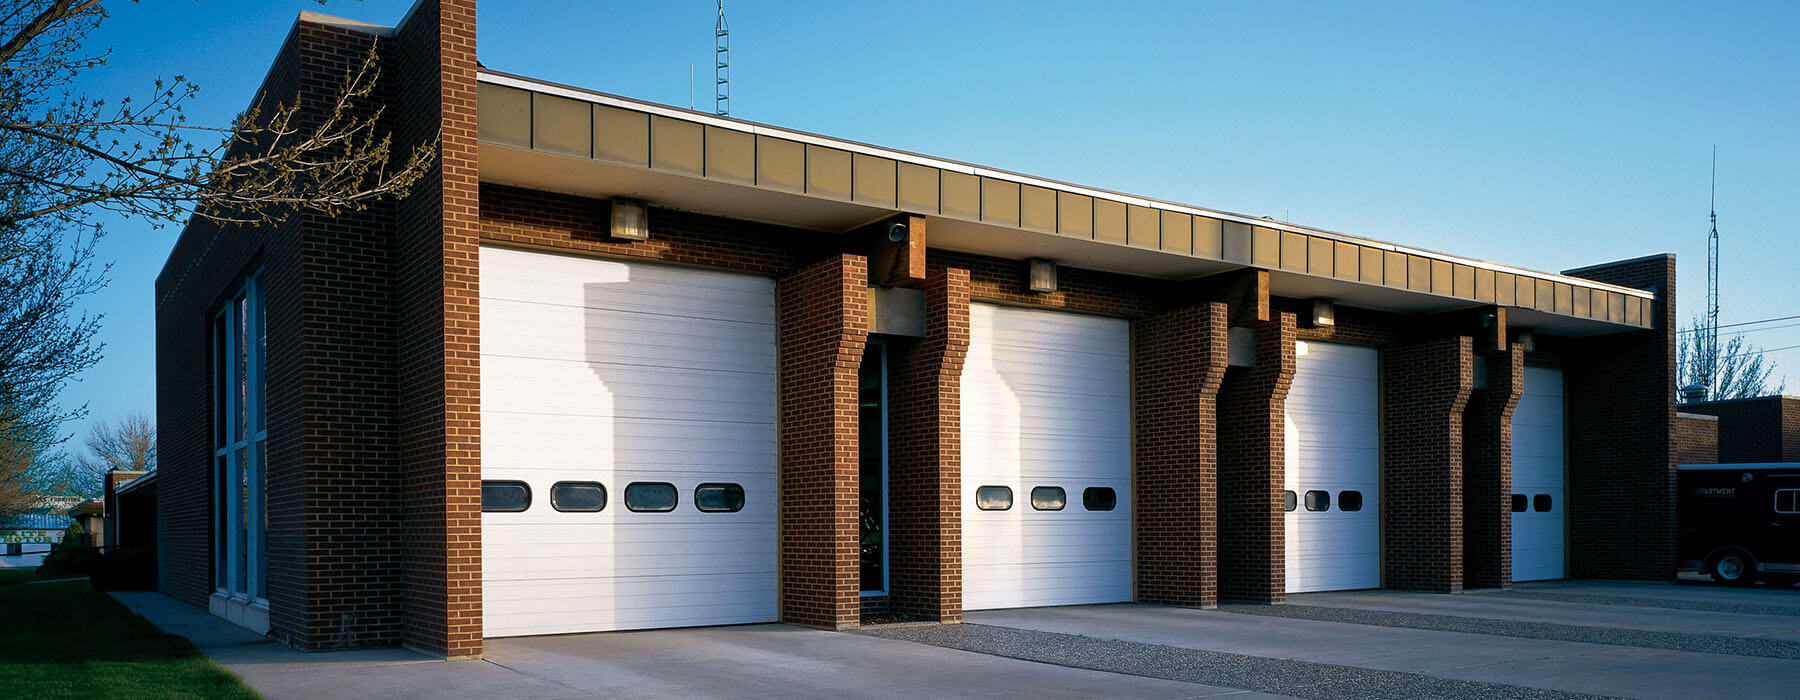 Charming Overhead Door Company Of Sioux City Blog